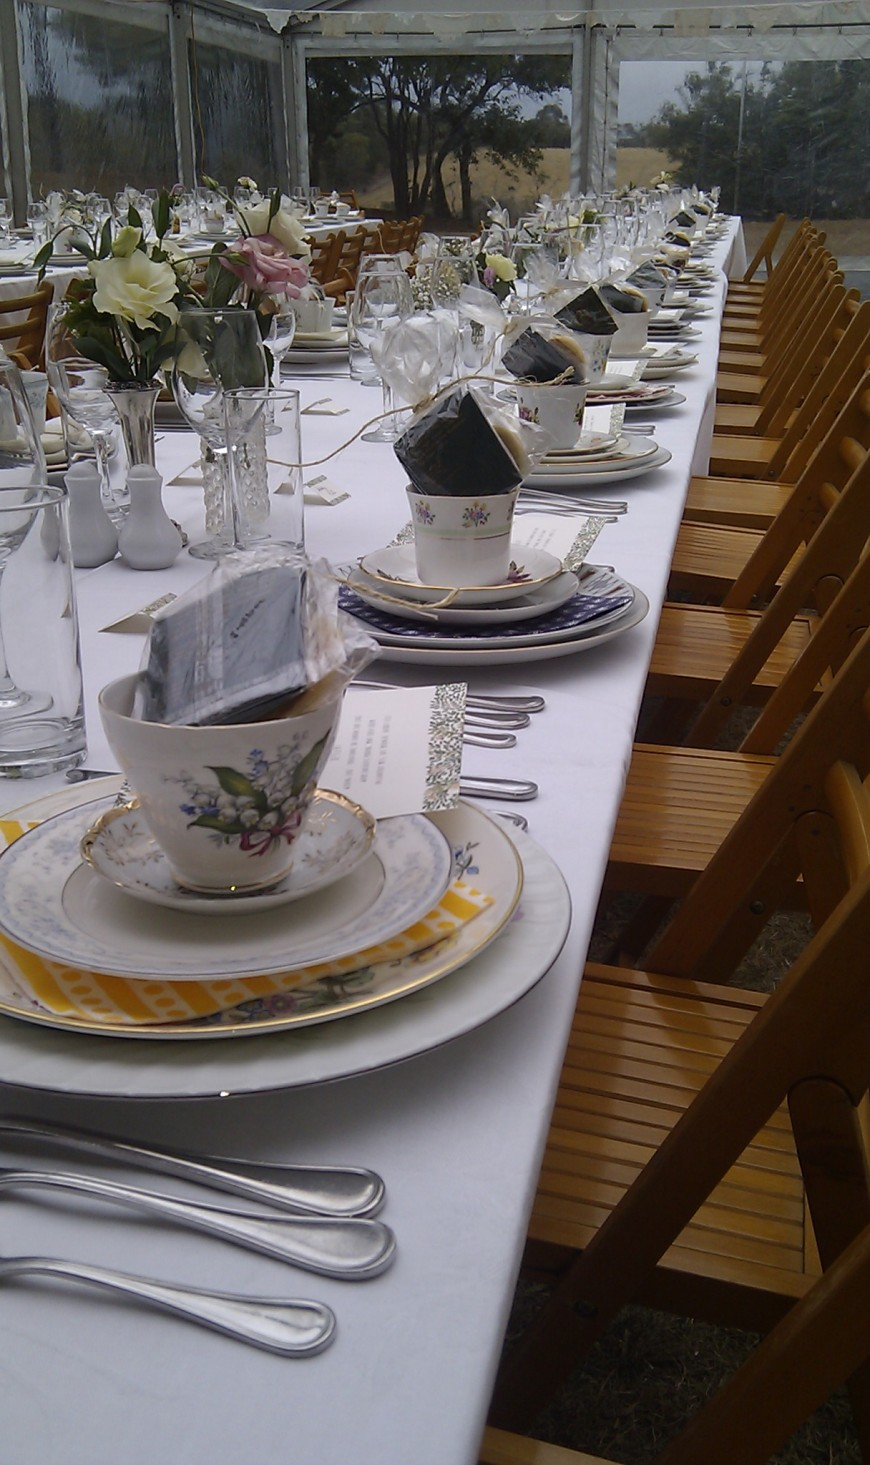 Beautiful china really made these place settings.